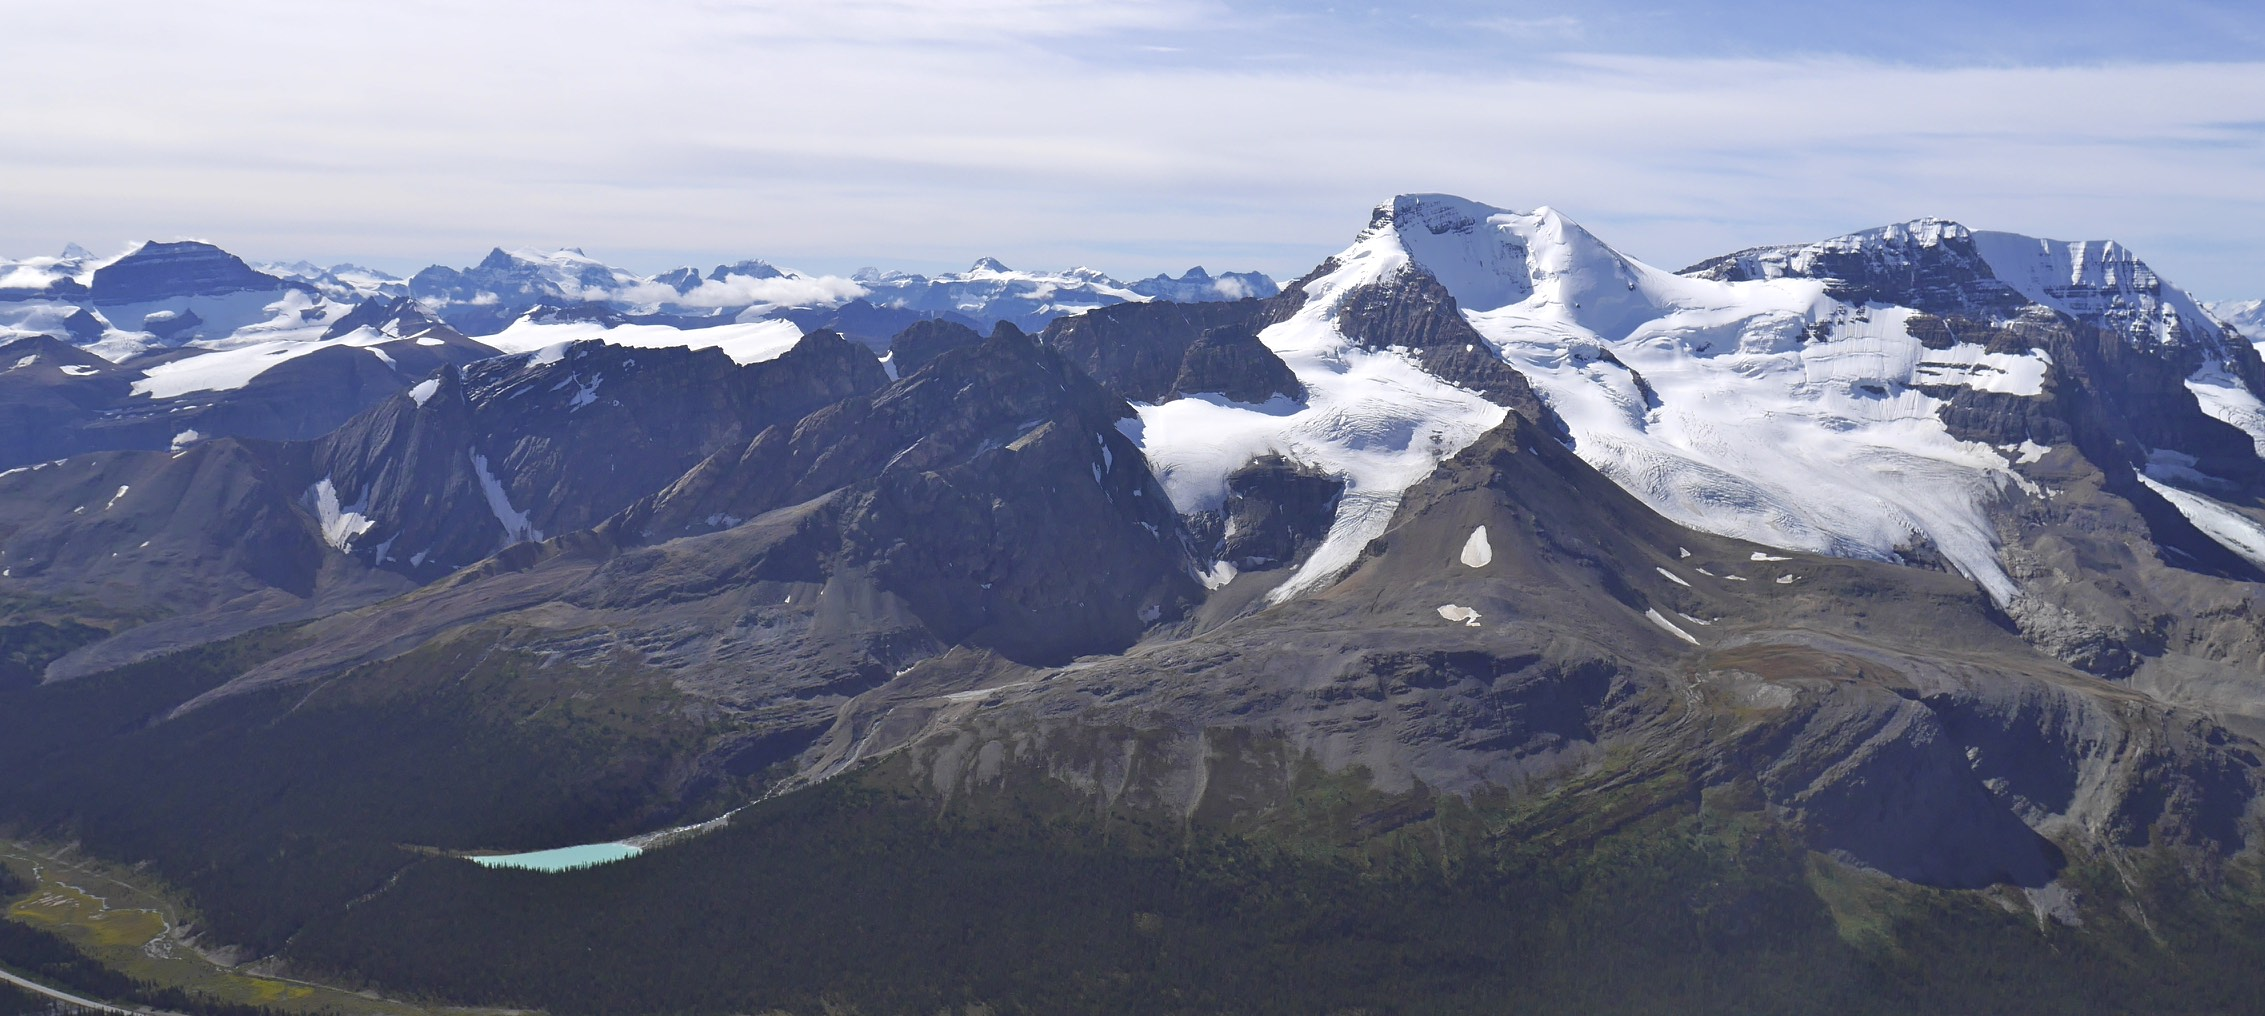 Mt. Athabasca from Nigel Peak 3,211m